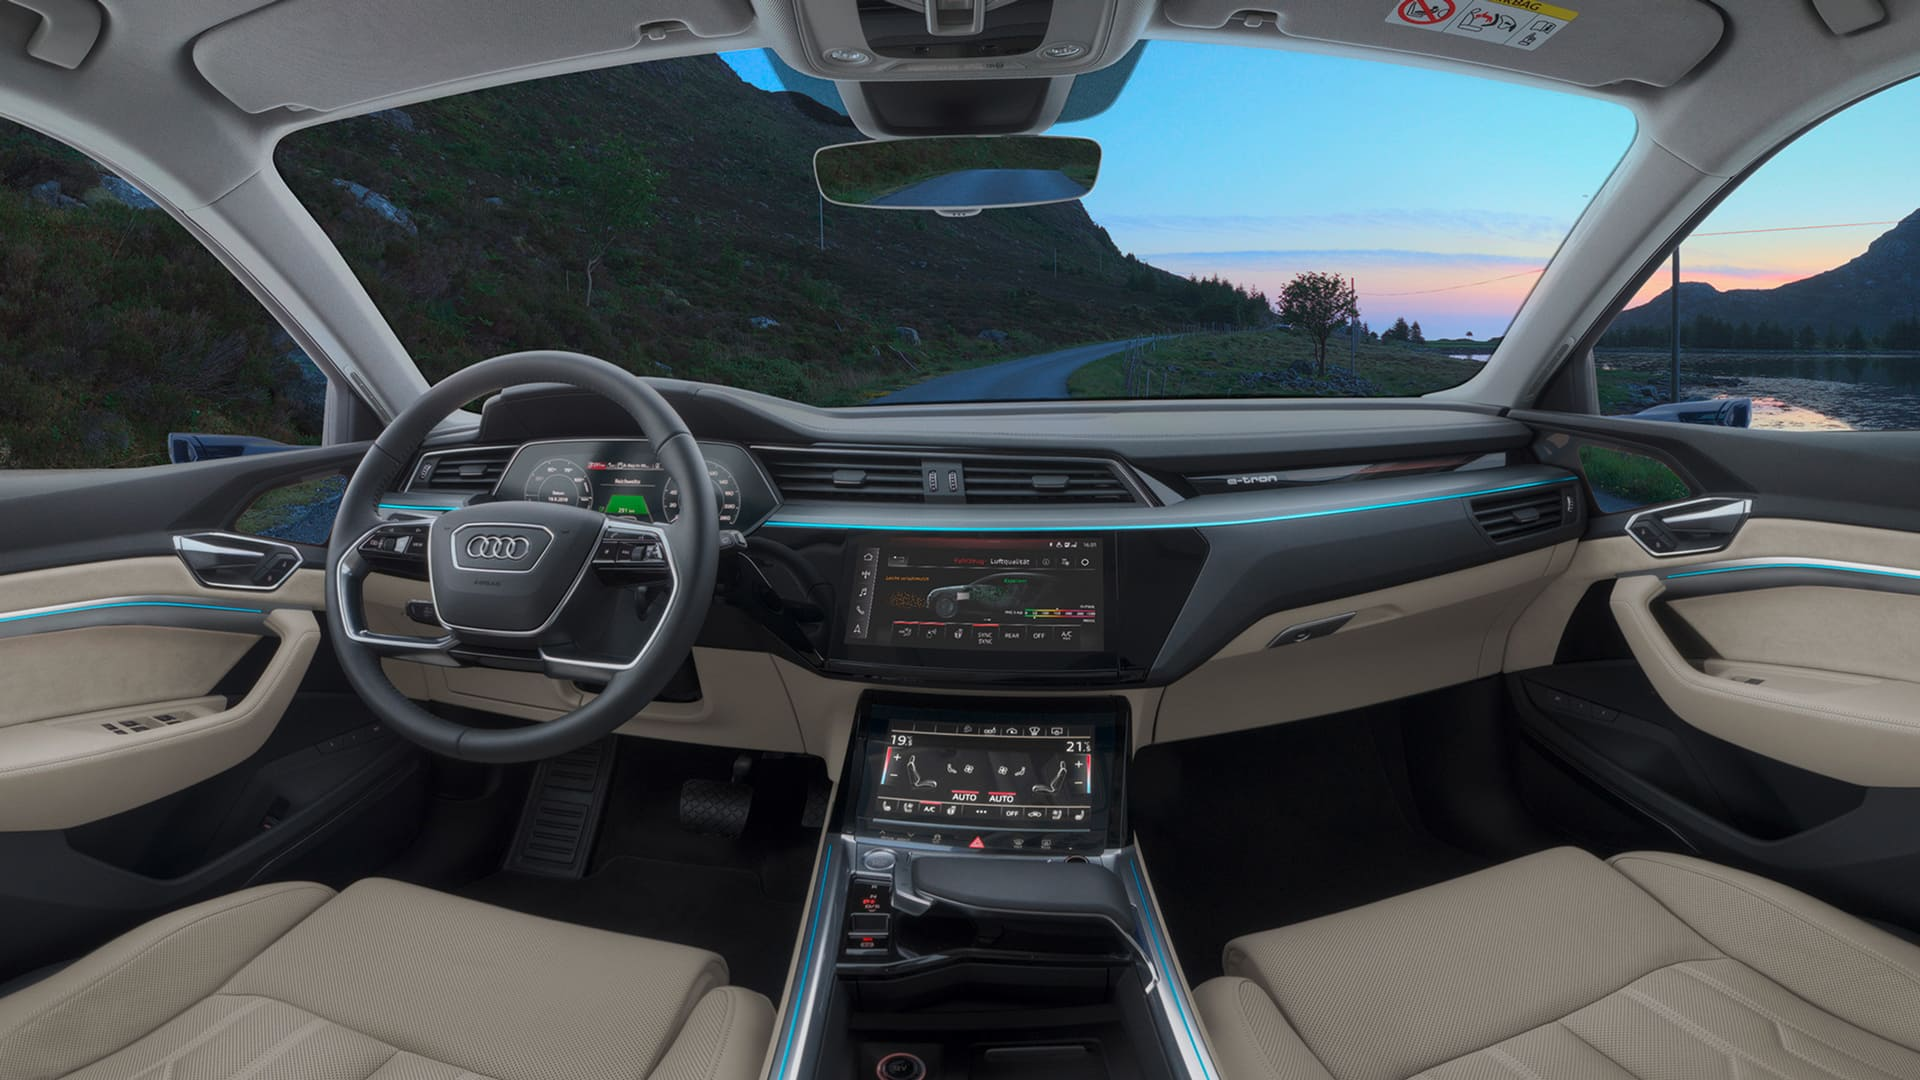 The Interior Of Audi E Tron Is Ious And Comfortable Can Accommodate Four S 615 Litres Luggage Displays Feature Oled Technology